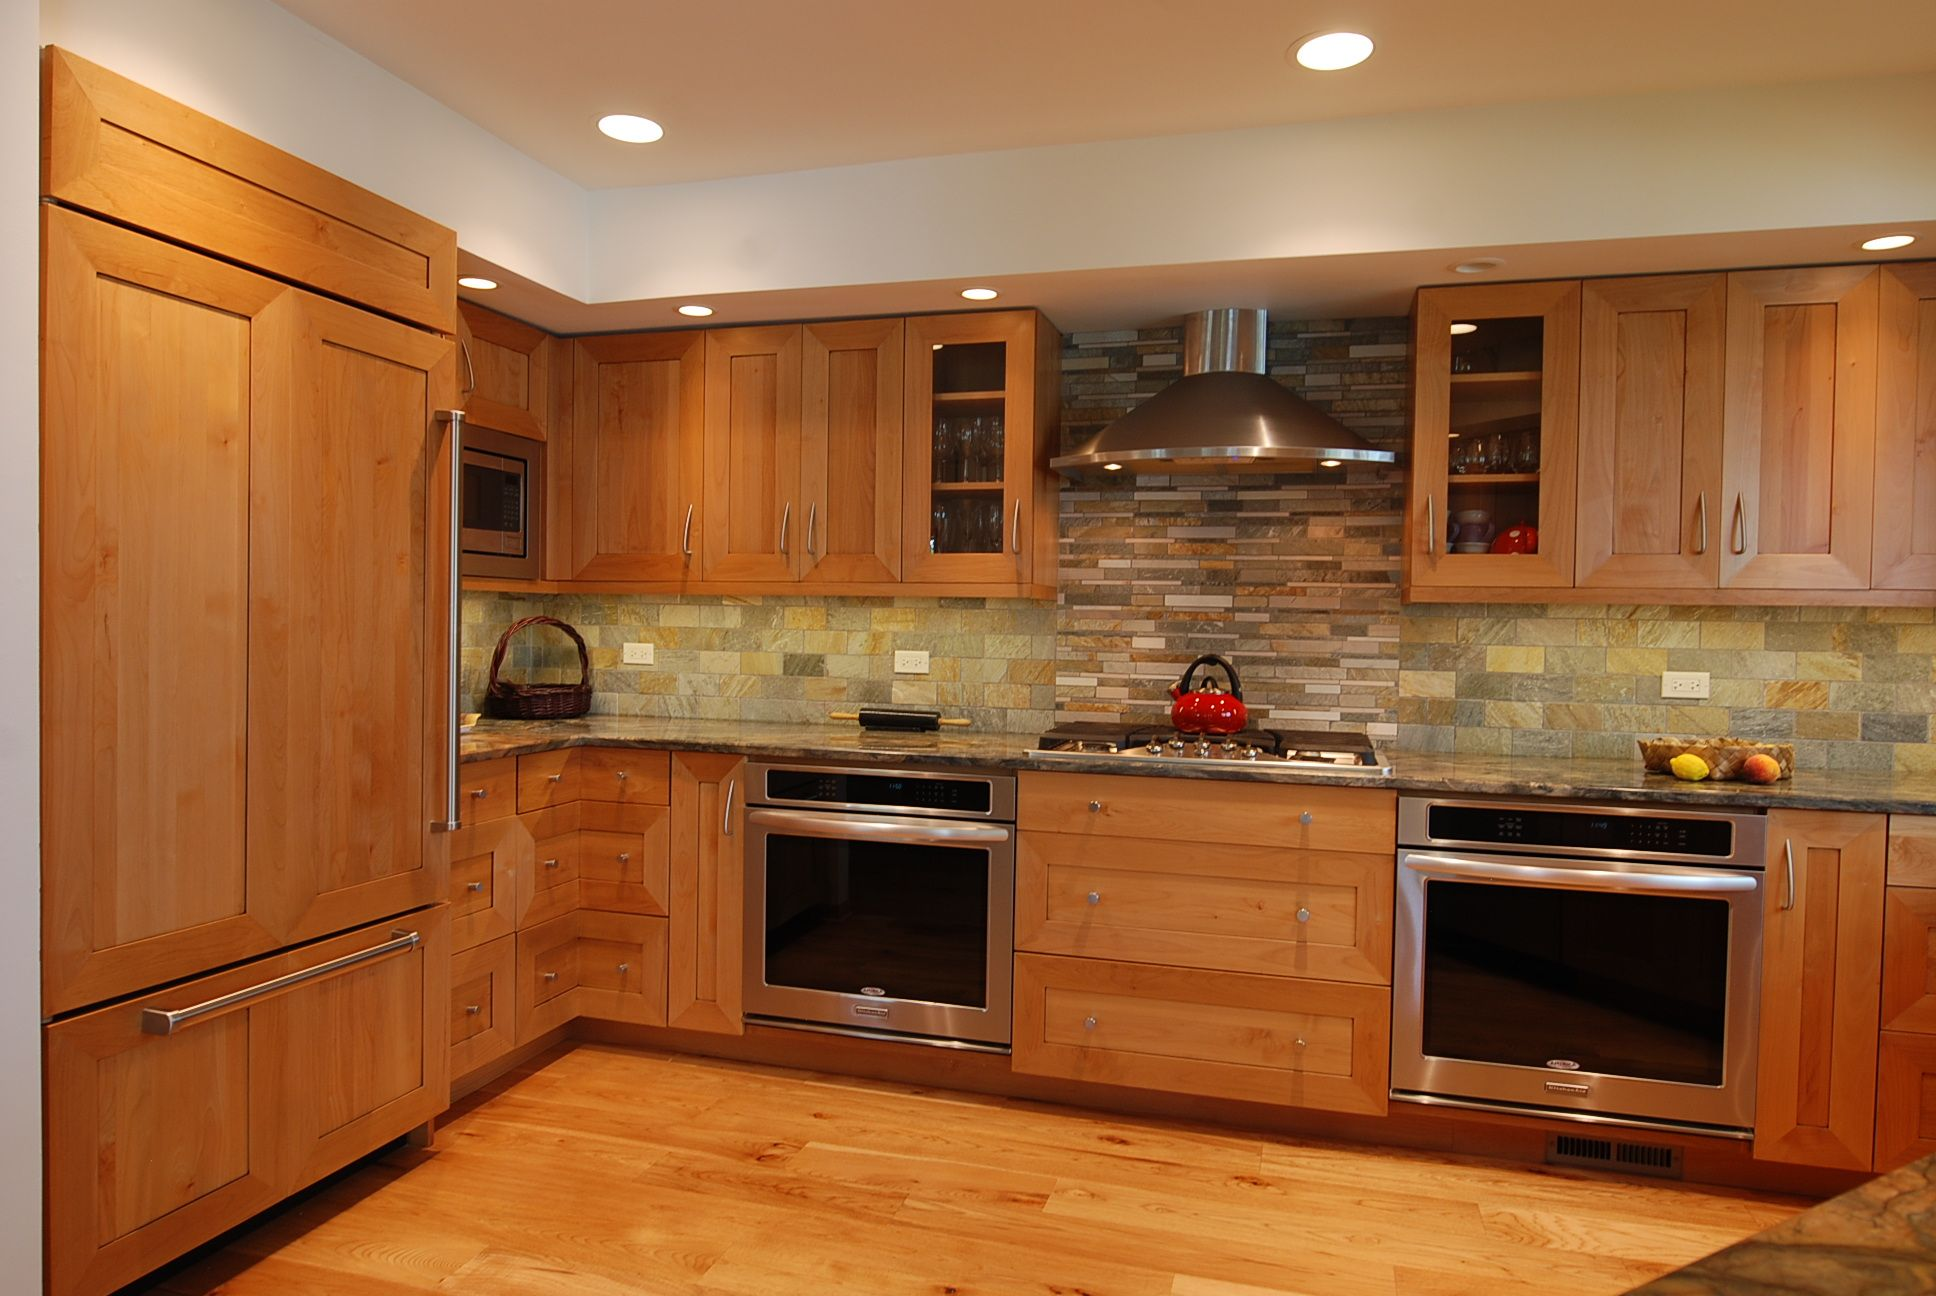 Pecan Cabinets With Granite | www.cintronbeveragegroup.com